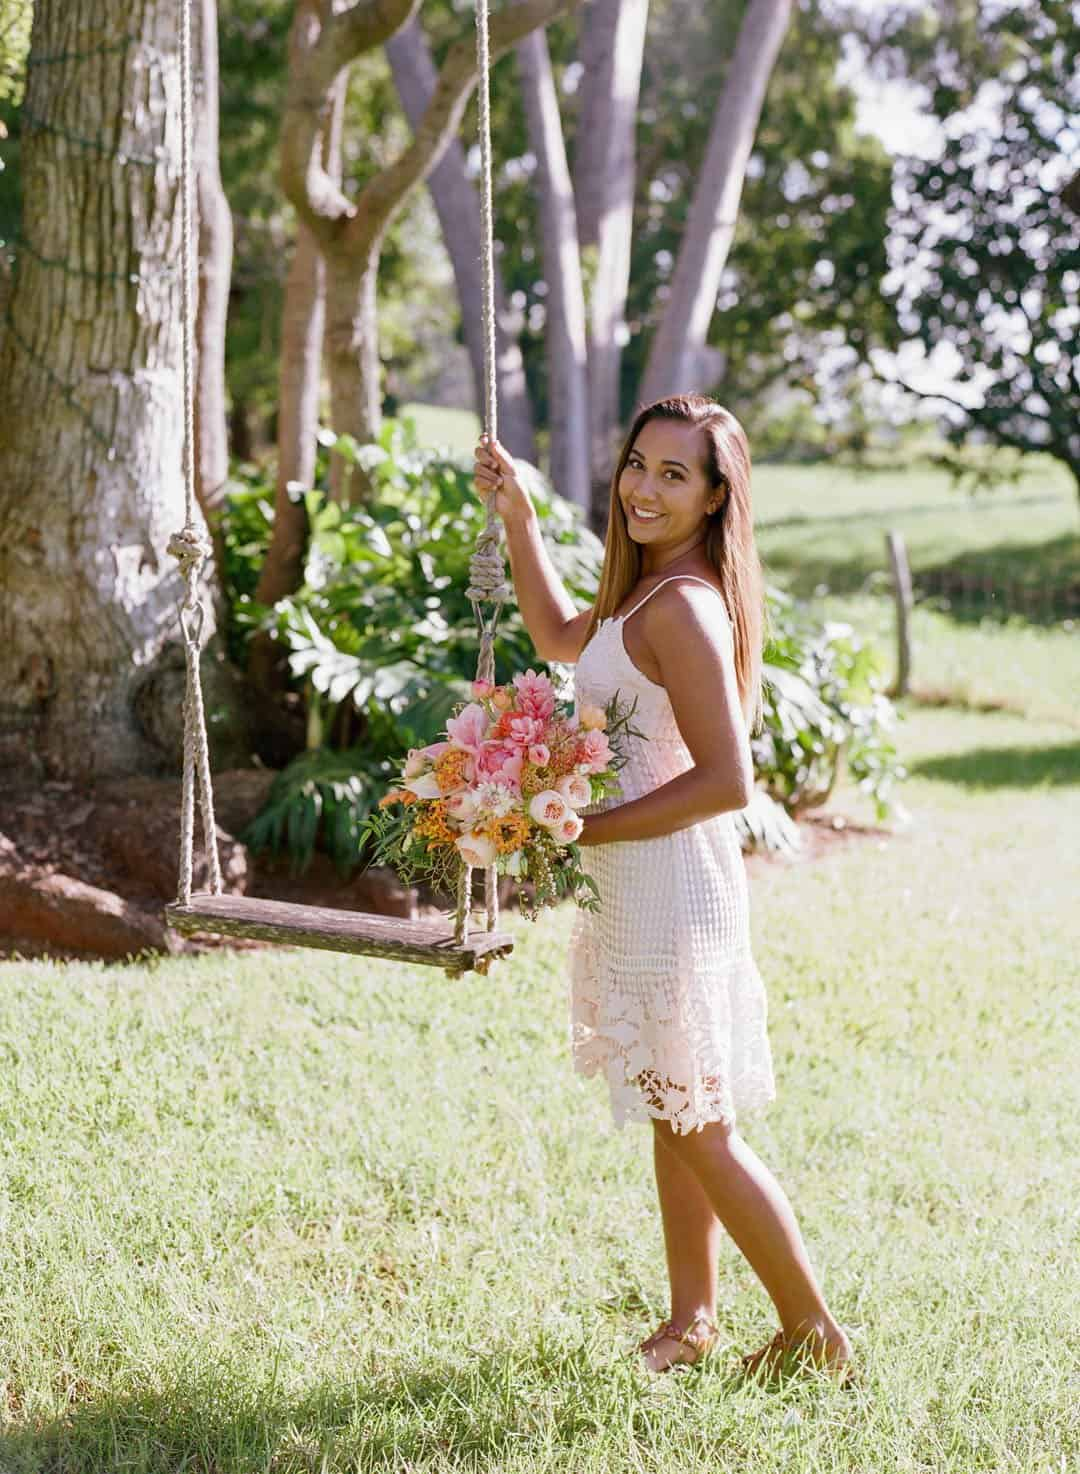 Metering Tips for Film Photography by Sarah Collier on Shoot It With Film